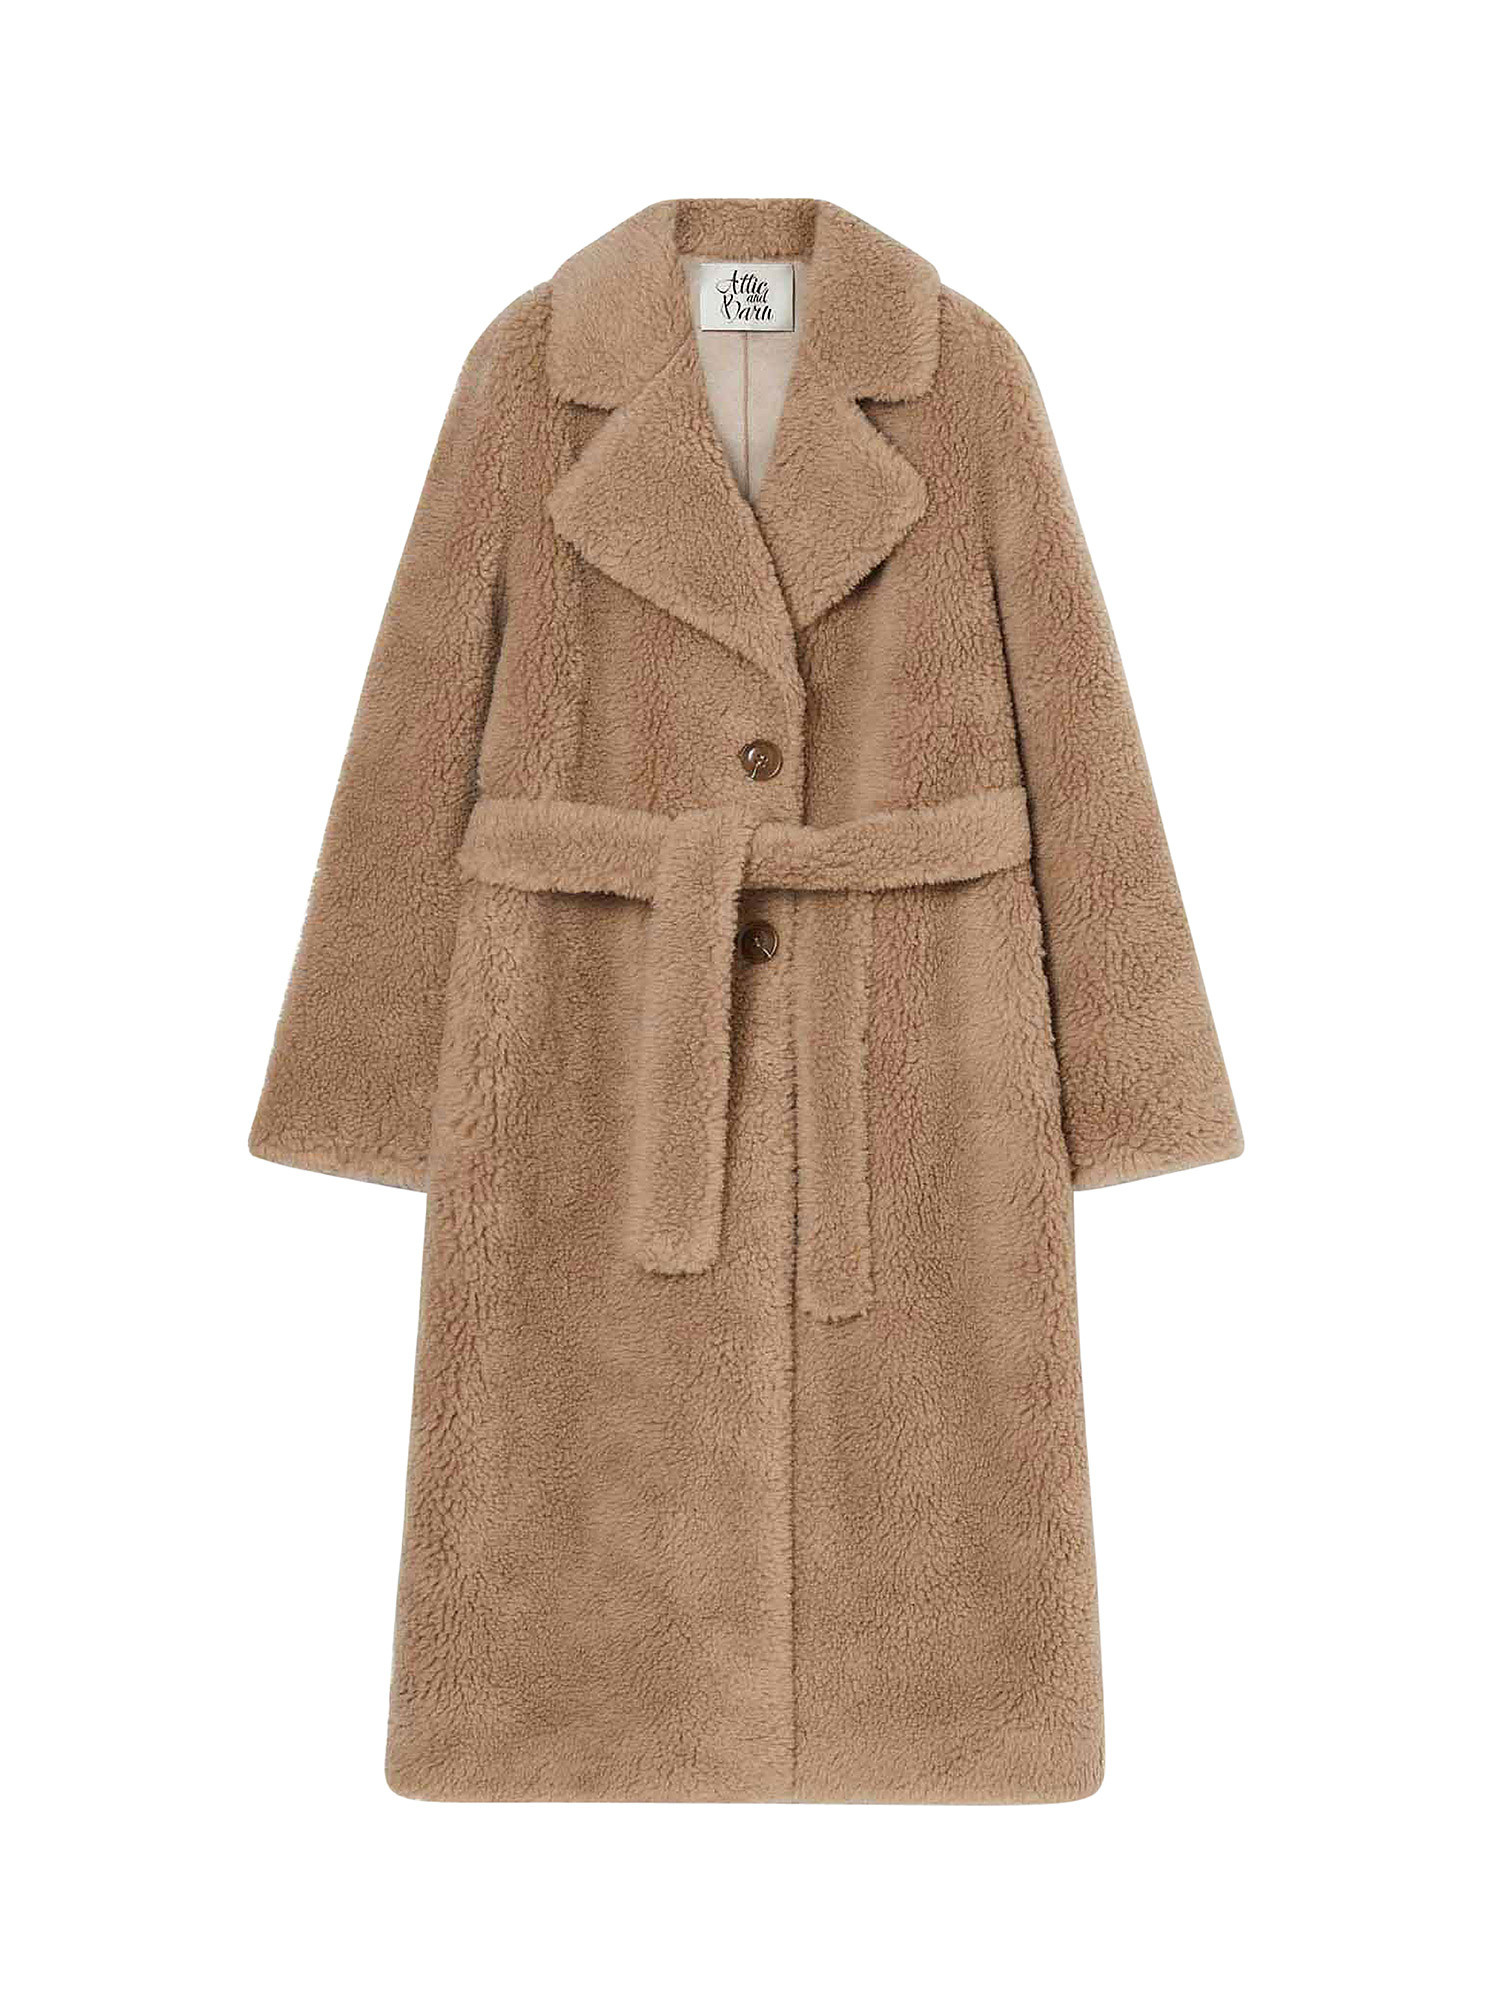 Cappotto reversibile, Beige, large image number 1